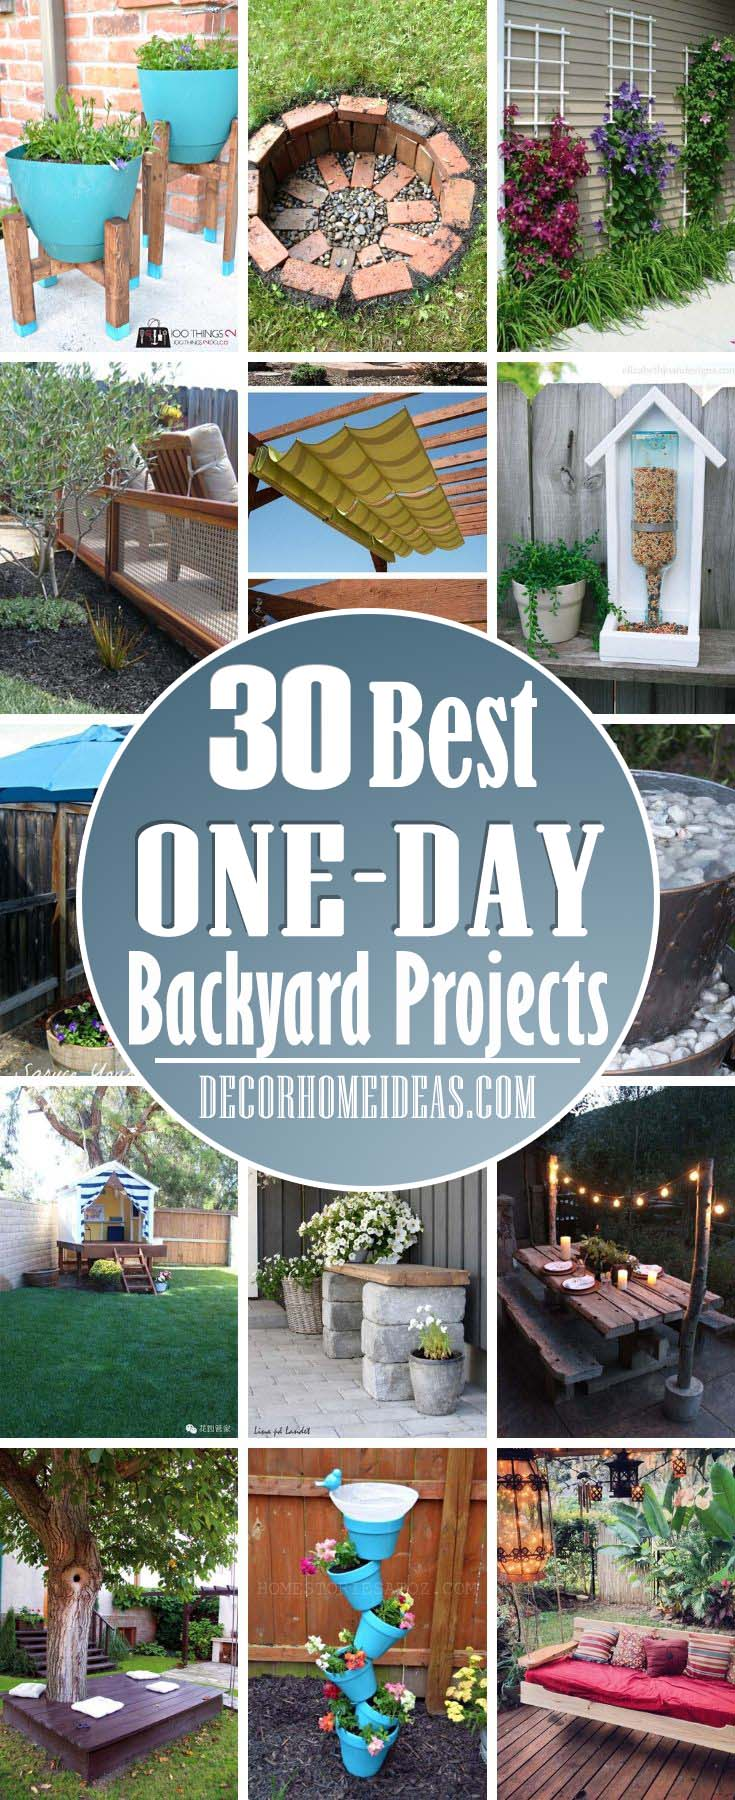 Best One Day Backyard Project Ideas. Great summer DIY project for your garden or backyard. Fire pit, trellis, flower planter or swing - you name it. #diy #projects #backyard #garden #oneday #decorhomeideas